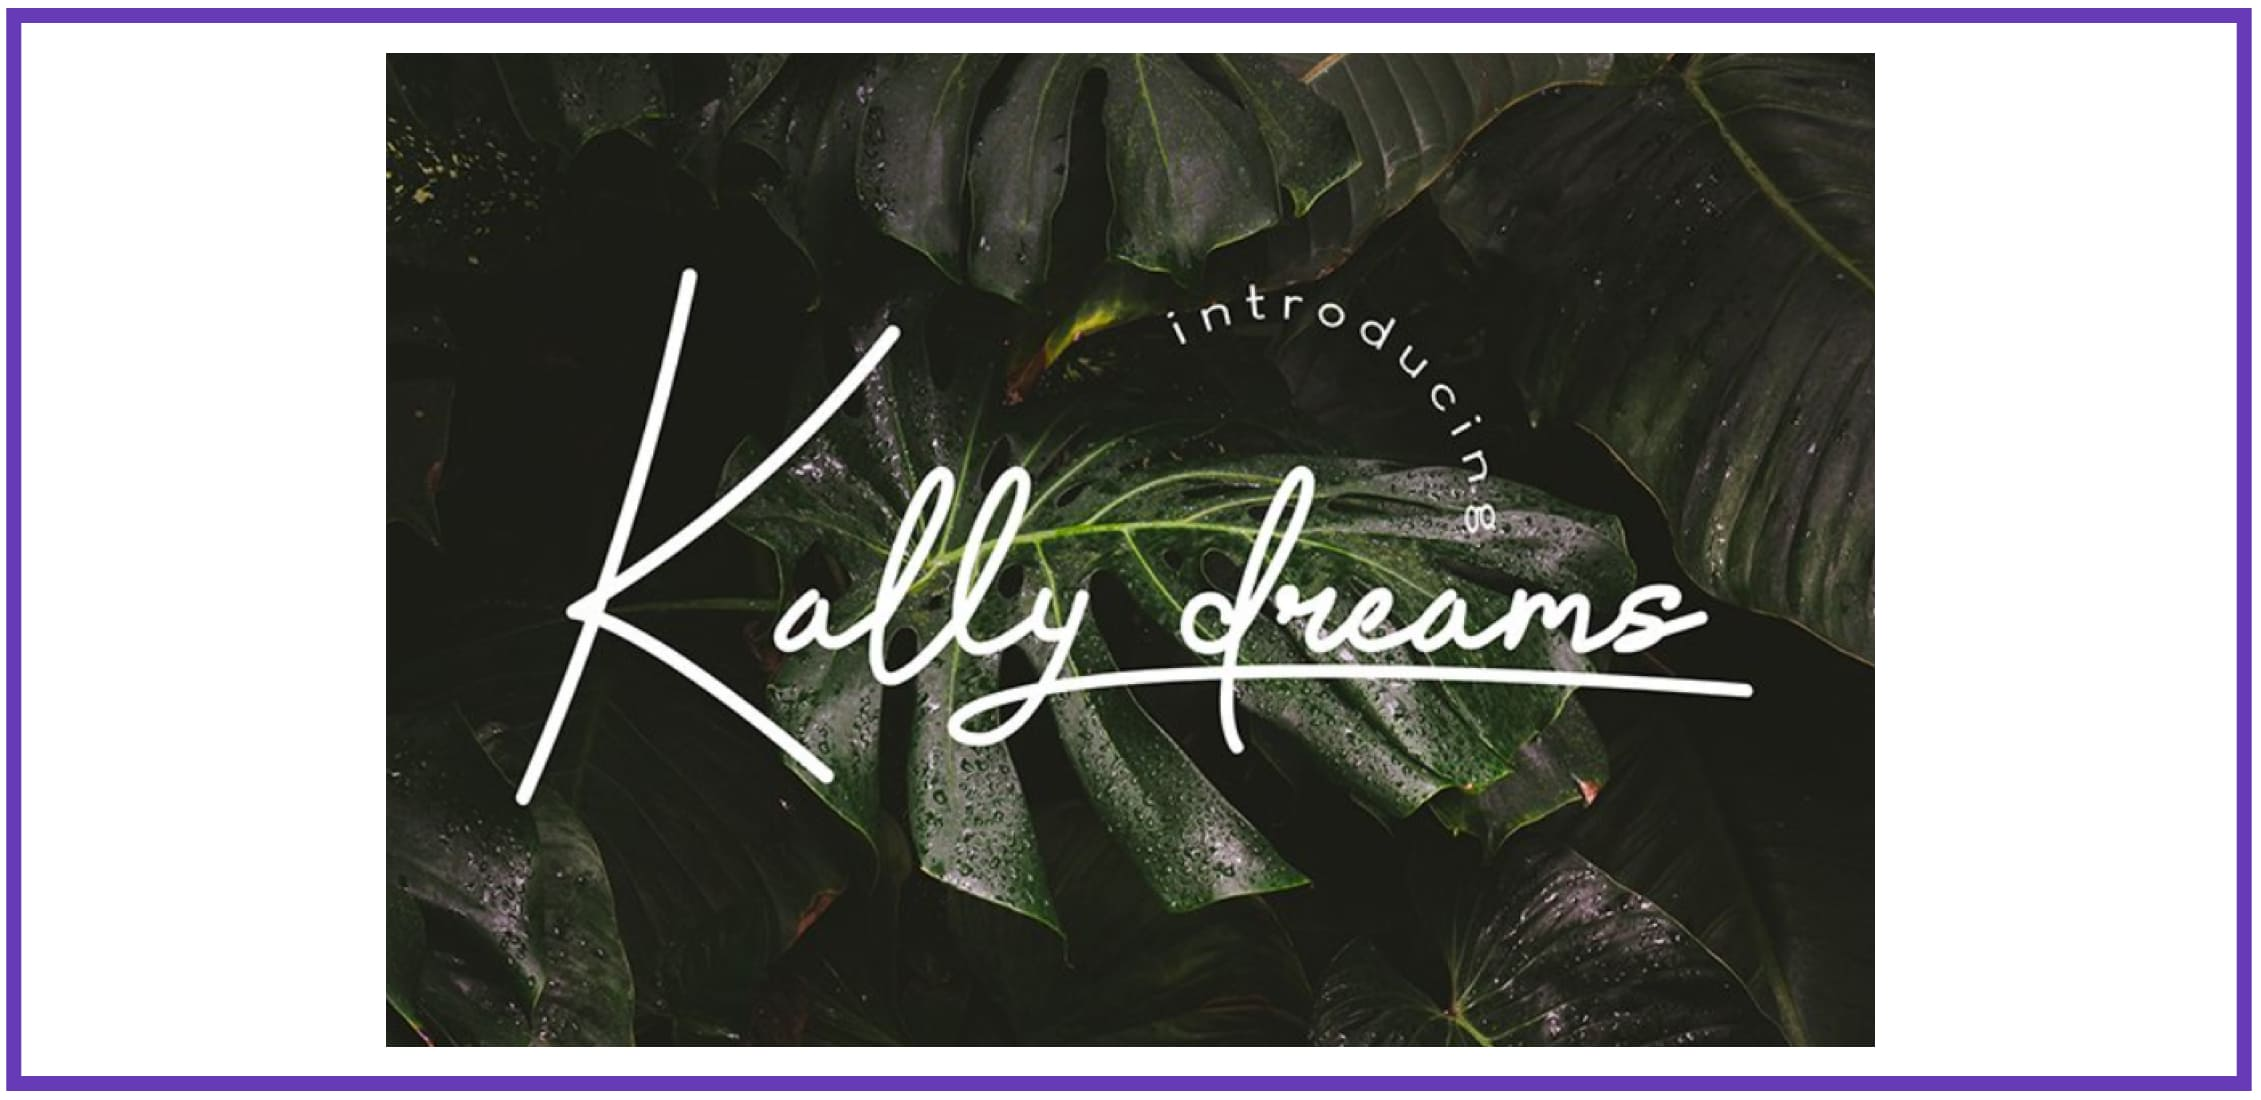 Kally dreams - monoline font By Hishand studio. Tropical Font.